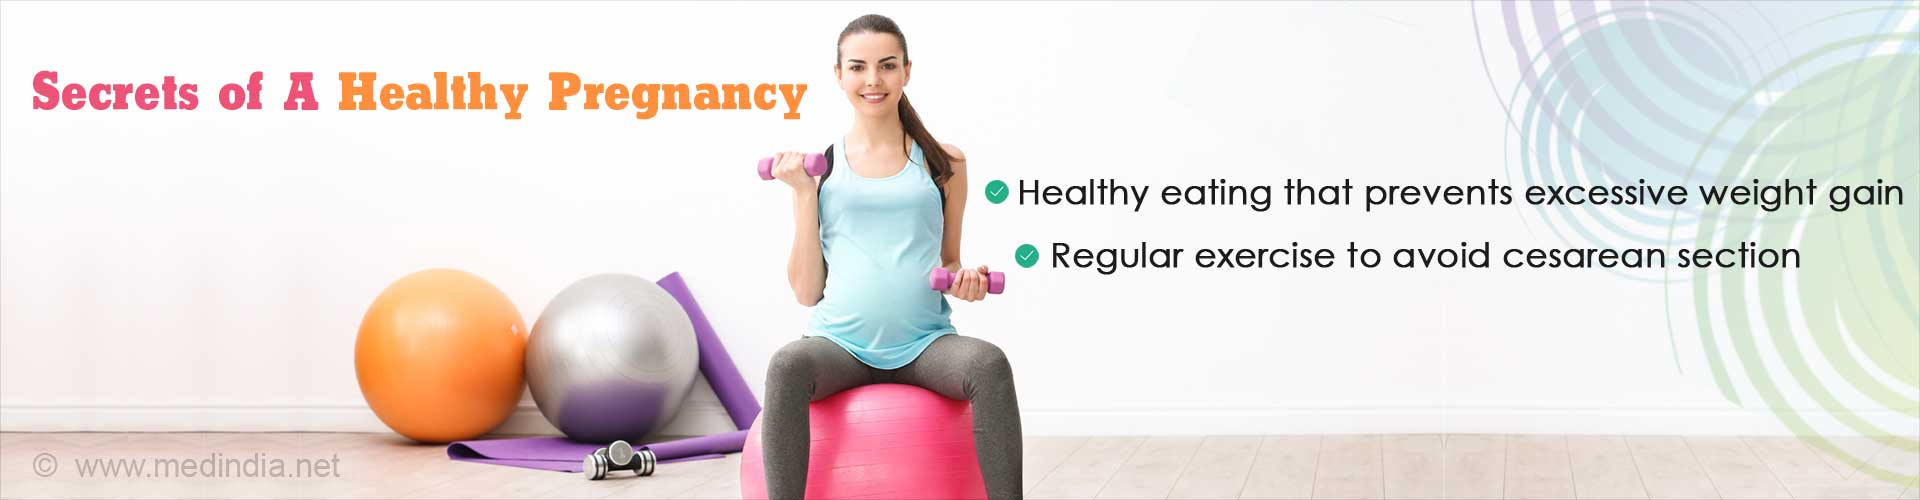 Secrets of A Healthy Pregnancy